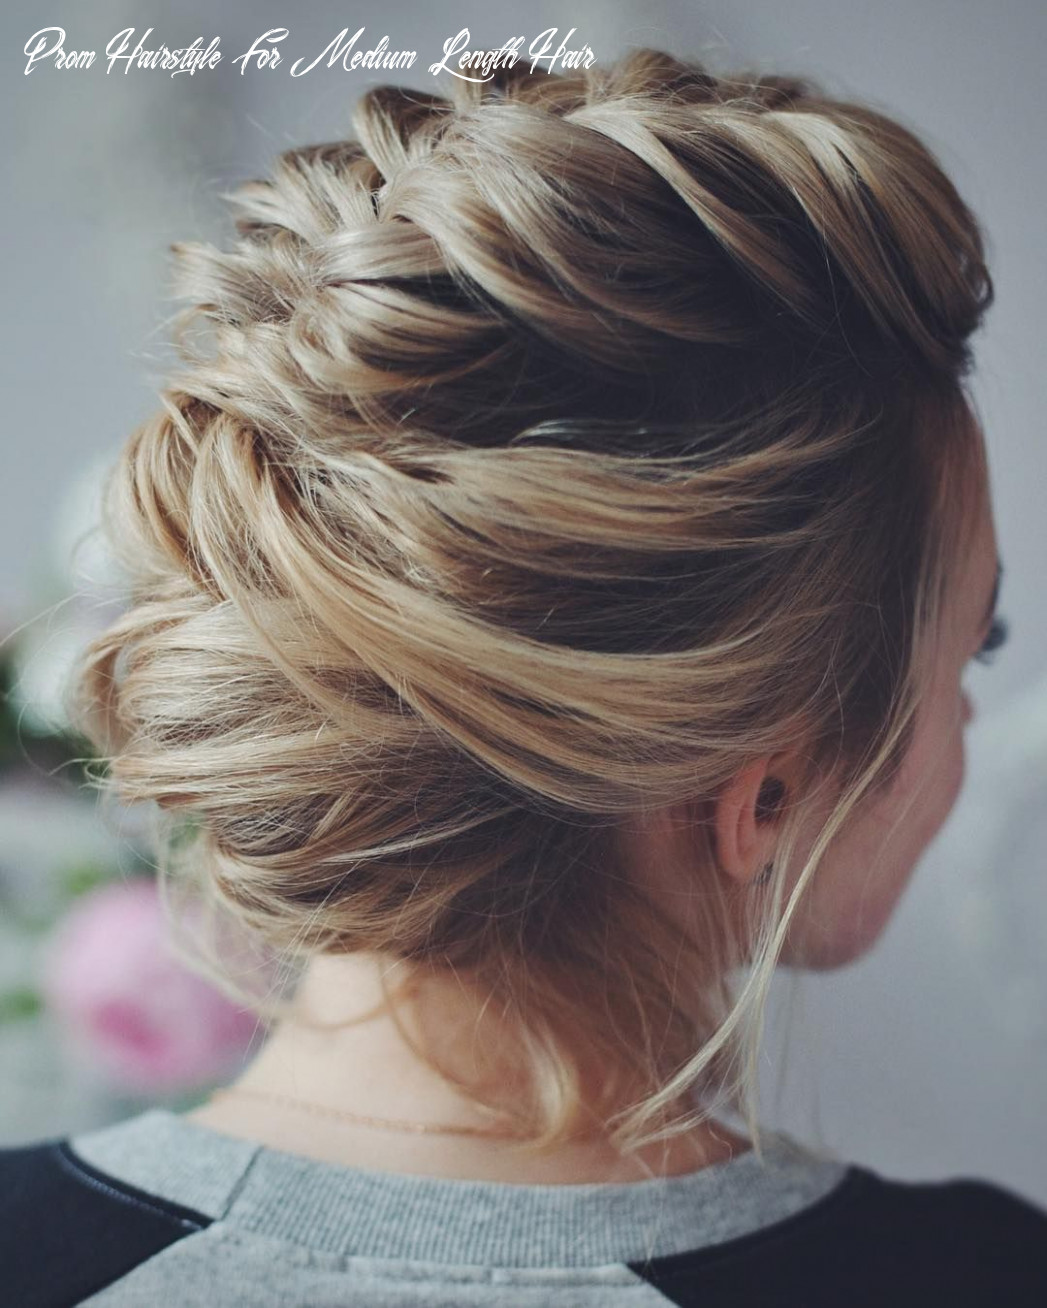 10 easy prom hairstyles for short and medium length hair